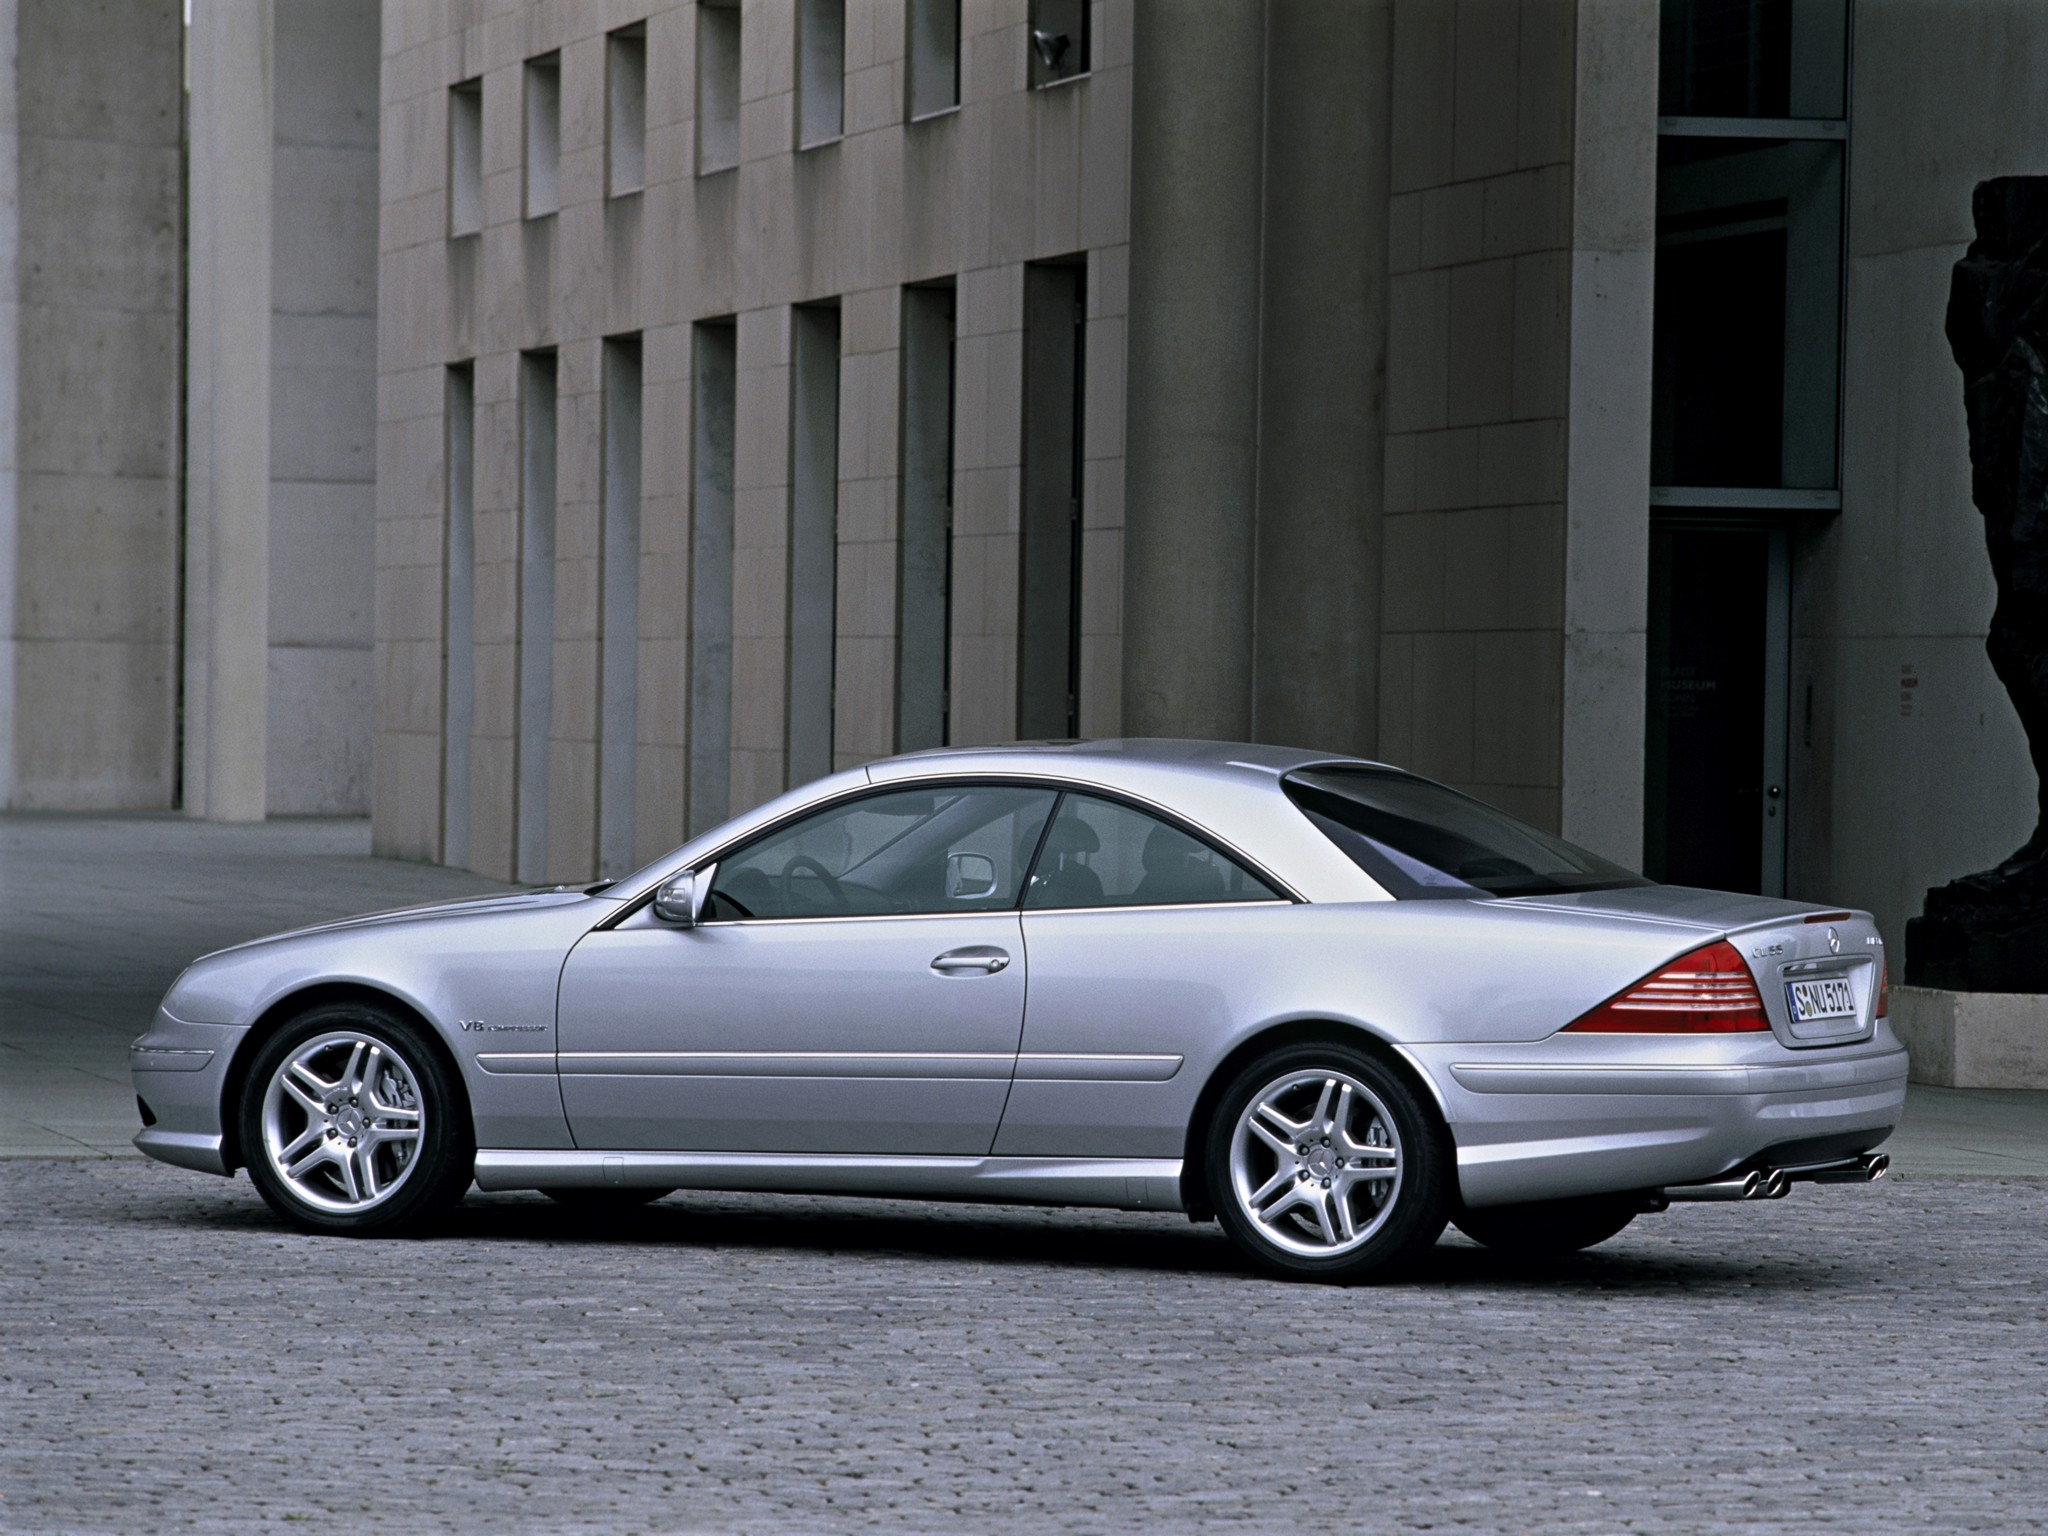 2018 Mercedes Benz CL55 AMG photo - 4